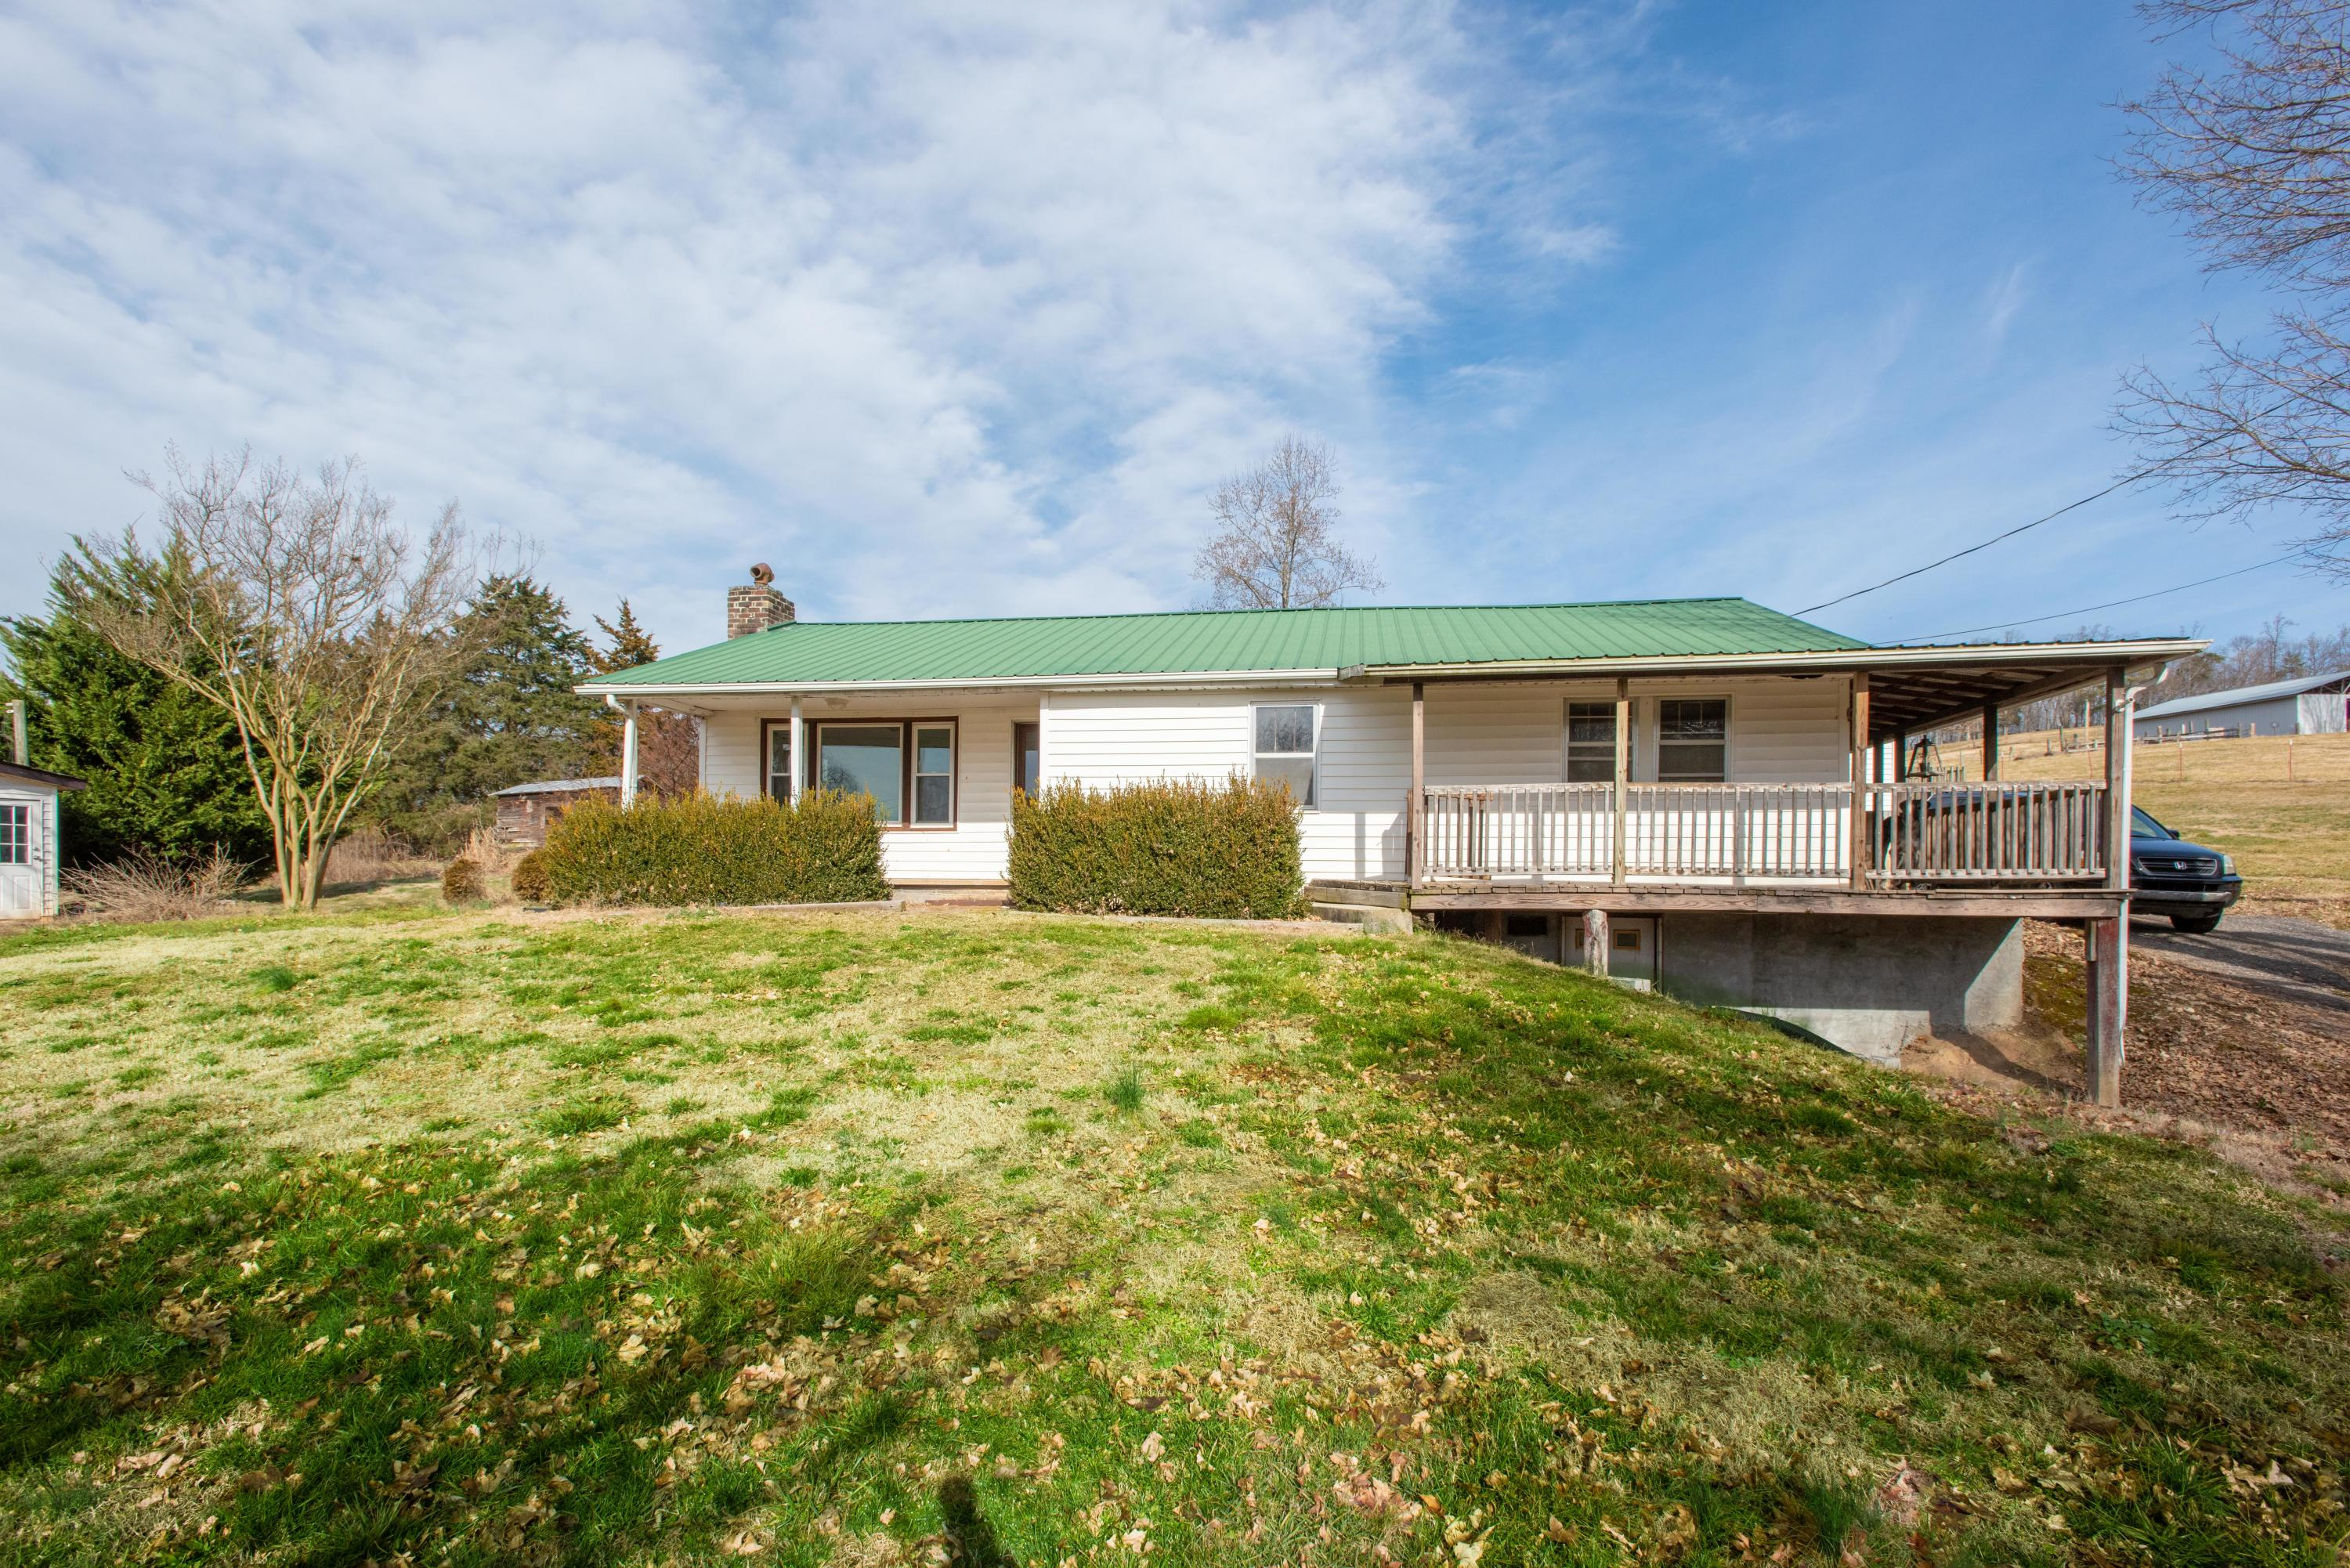 375 Metcalf Road Rd, Rutledge, Tennessee 37861, 2 Bedrooms Bedrooms, ,2 BathroomsBathrooms,Single Family,For Sale,Metcalf Road,1069015